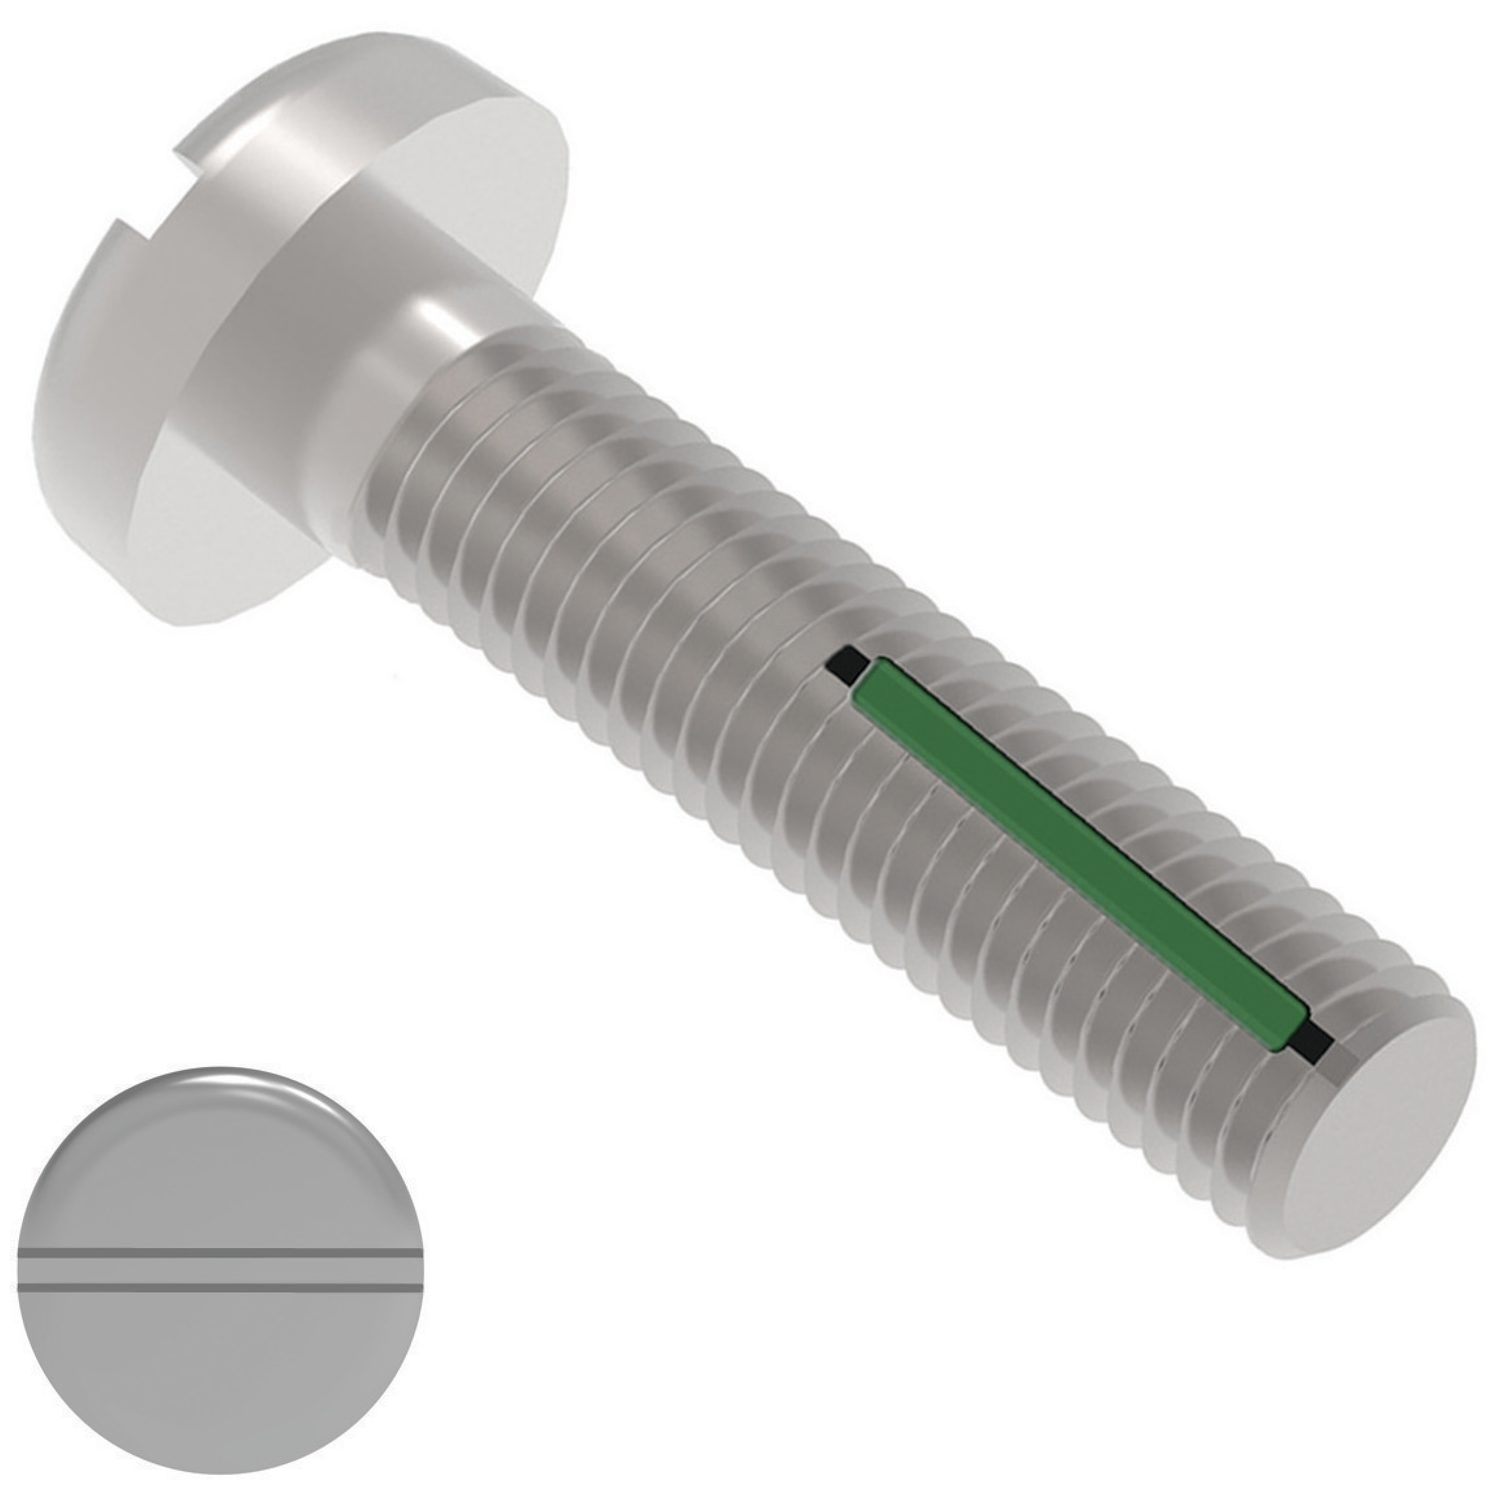 Self-Locking Pan Head Screws Surface finishes such as cadium plating, nickel plating, armalloy coating, black oxide coating - all available on request.